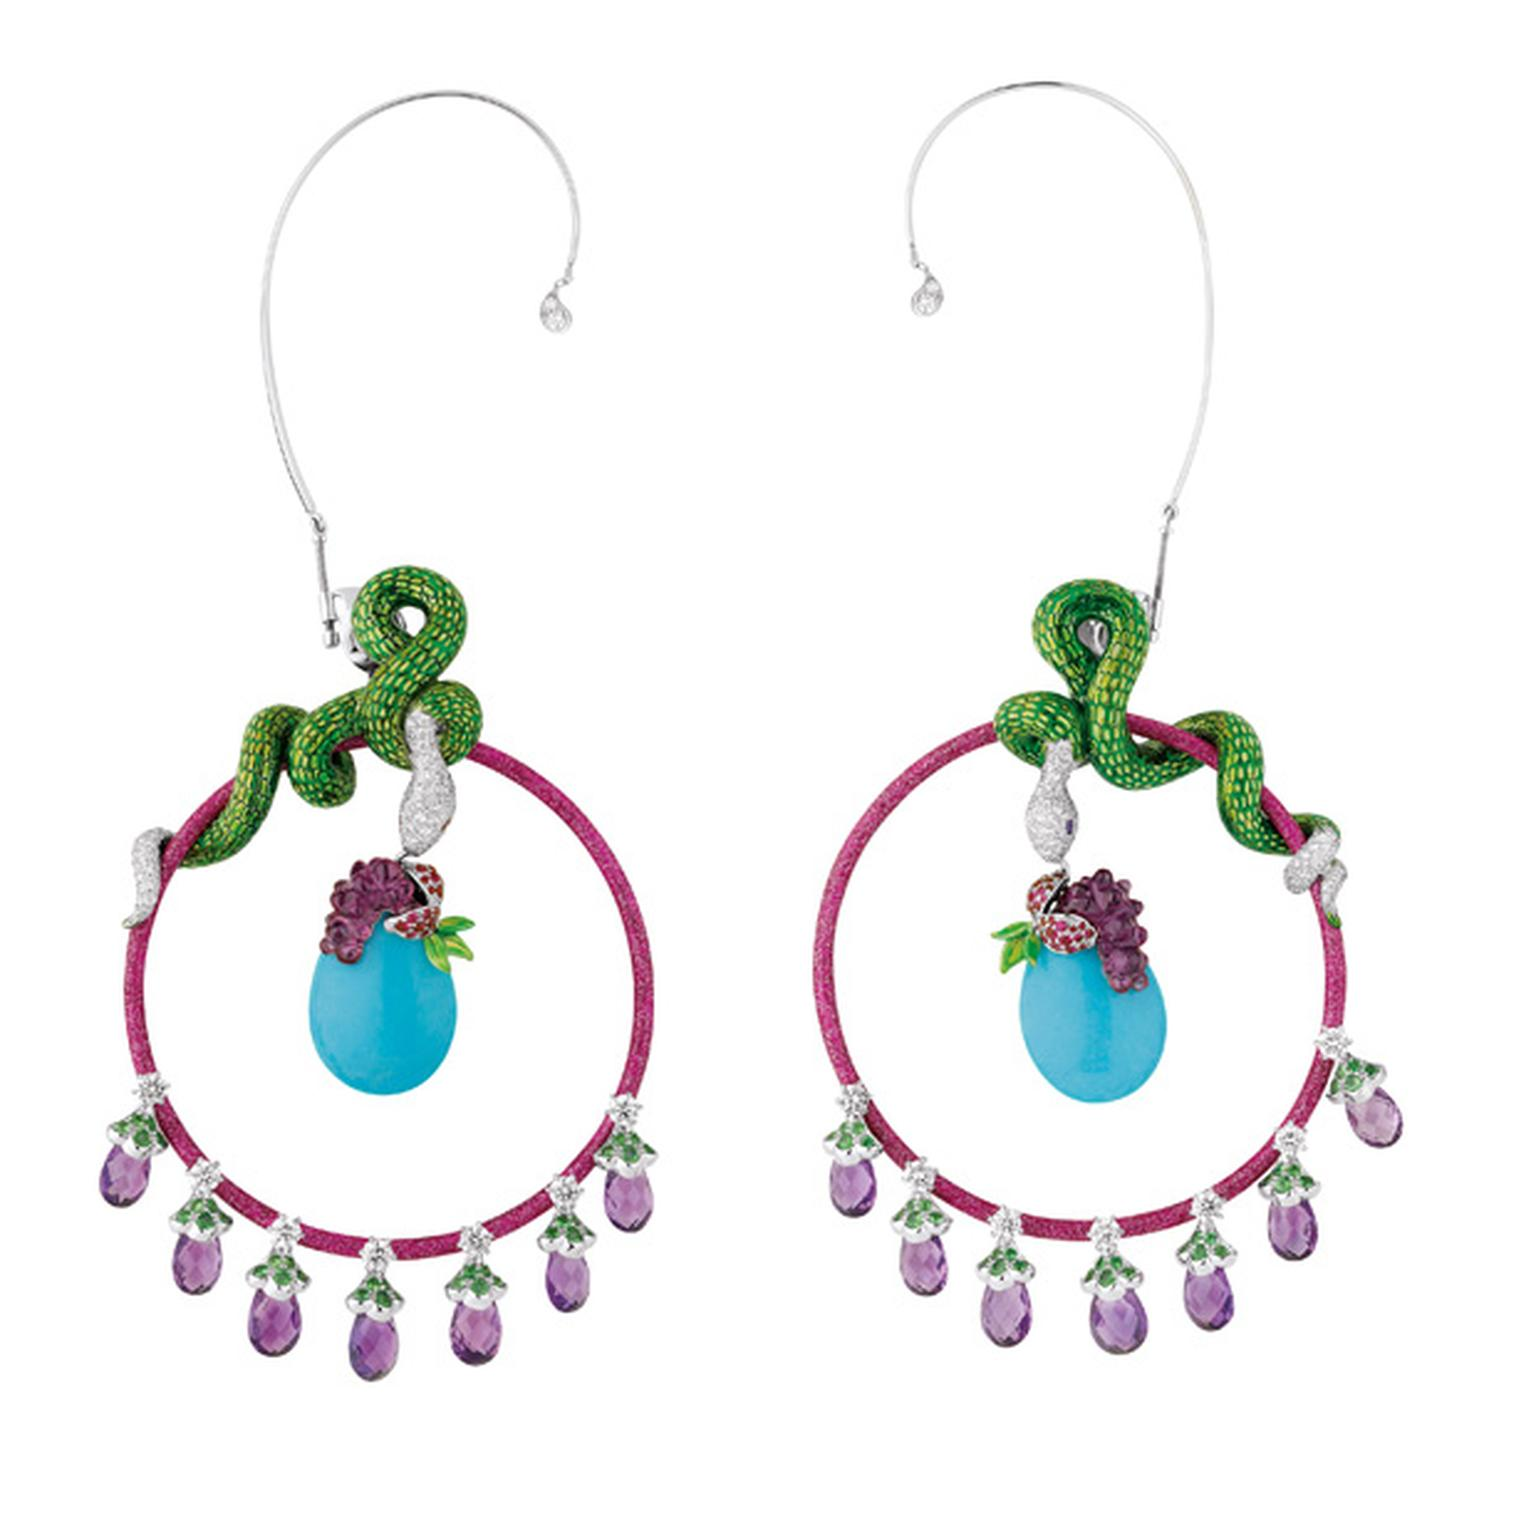 Dior Coffret de Victoire snake earrings